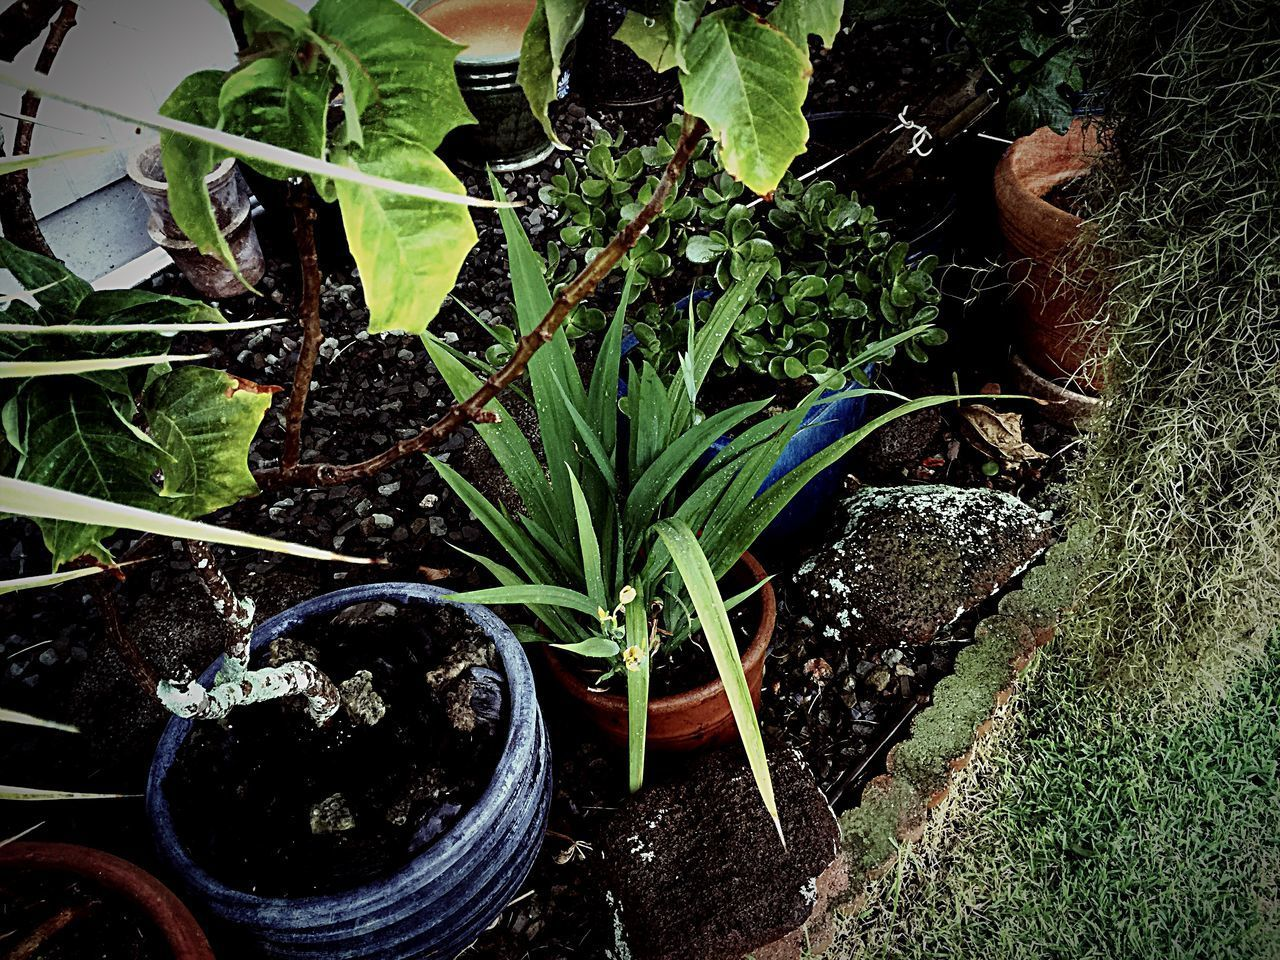 plant, growth, nature, potted plant, green color, no people, high angle view, plant part, leaf, dirt, day, freshness, beauty in nature, food and drink, botany, land, food, outdoors, field, flower pot, gardening, plant nursery